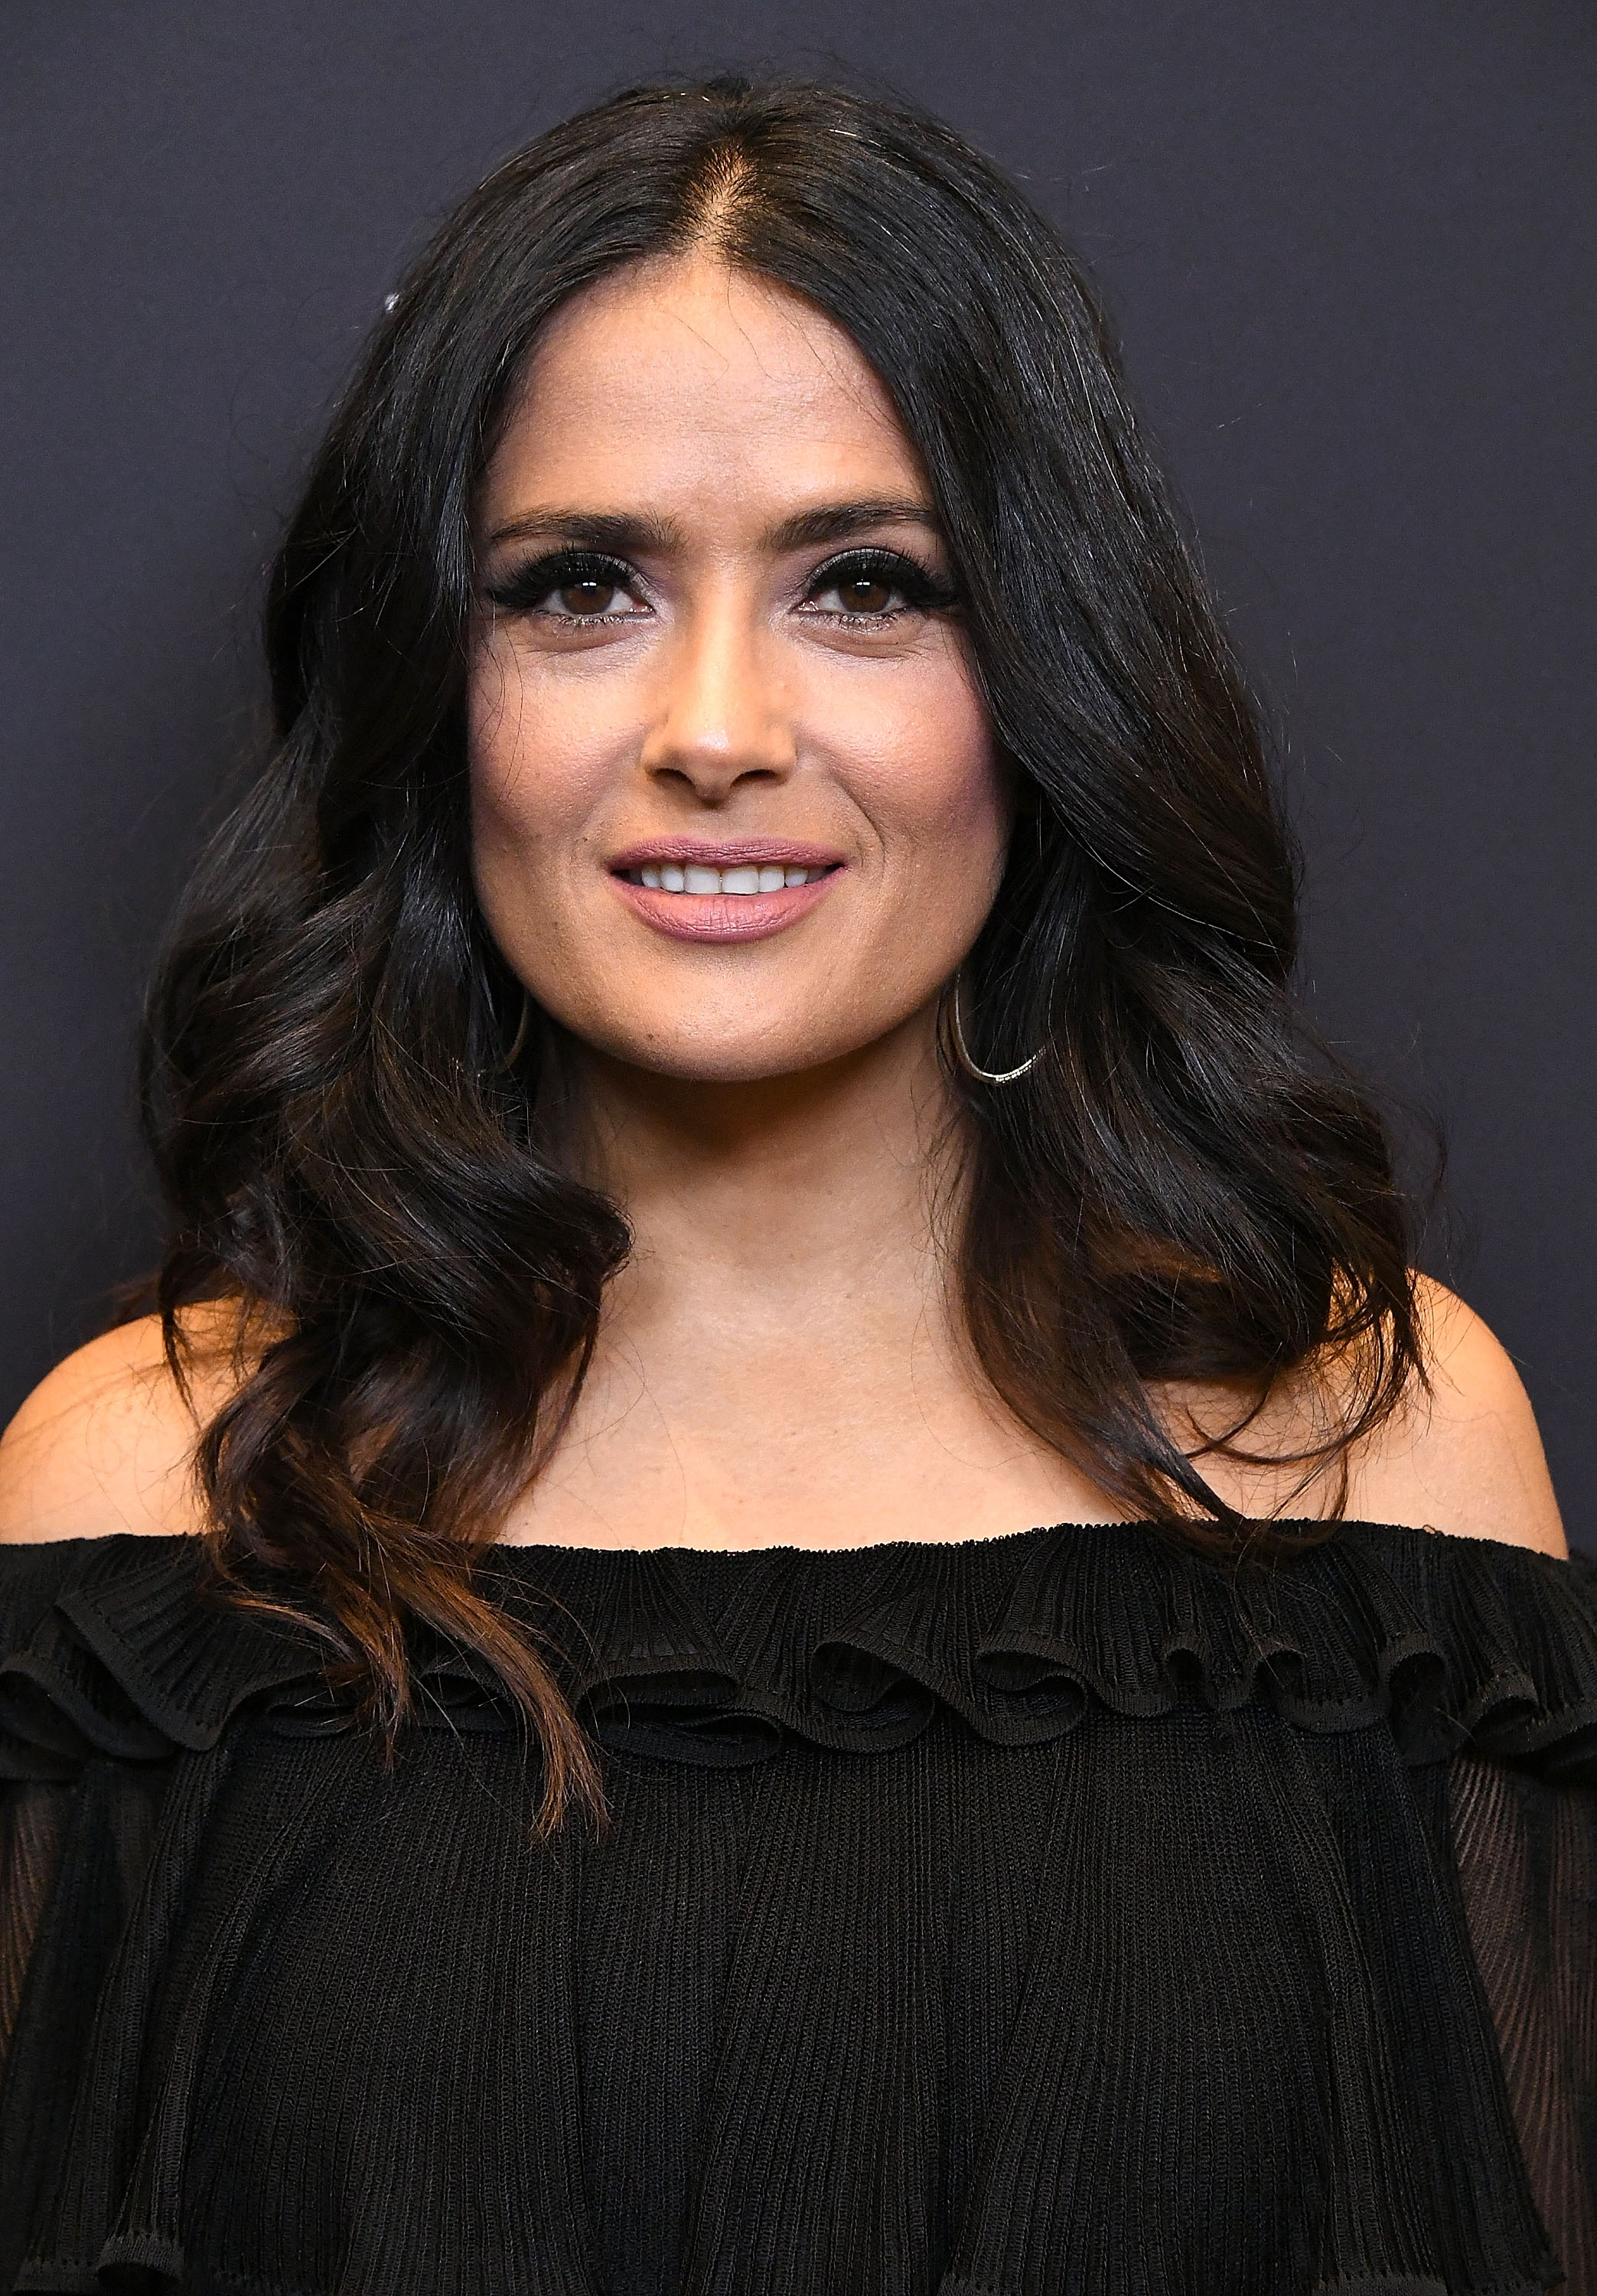 WEST HOLLYWOOD, CA - NOVEMBER 15: Salma Hayek arrives at the Hollywood Foreign Press Association And InStyle Celebrate The 75th Anniversary Of The Golden Globe Awards at Catch LA on November 15, 2017 in West Hollywood, California. (Photo by Steve Granitz/WireImage)